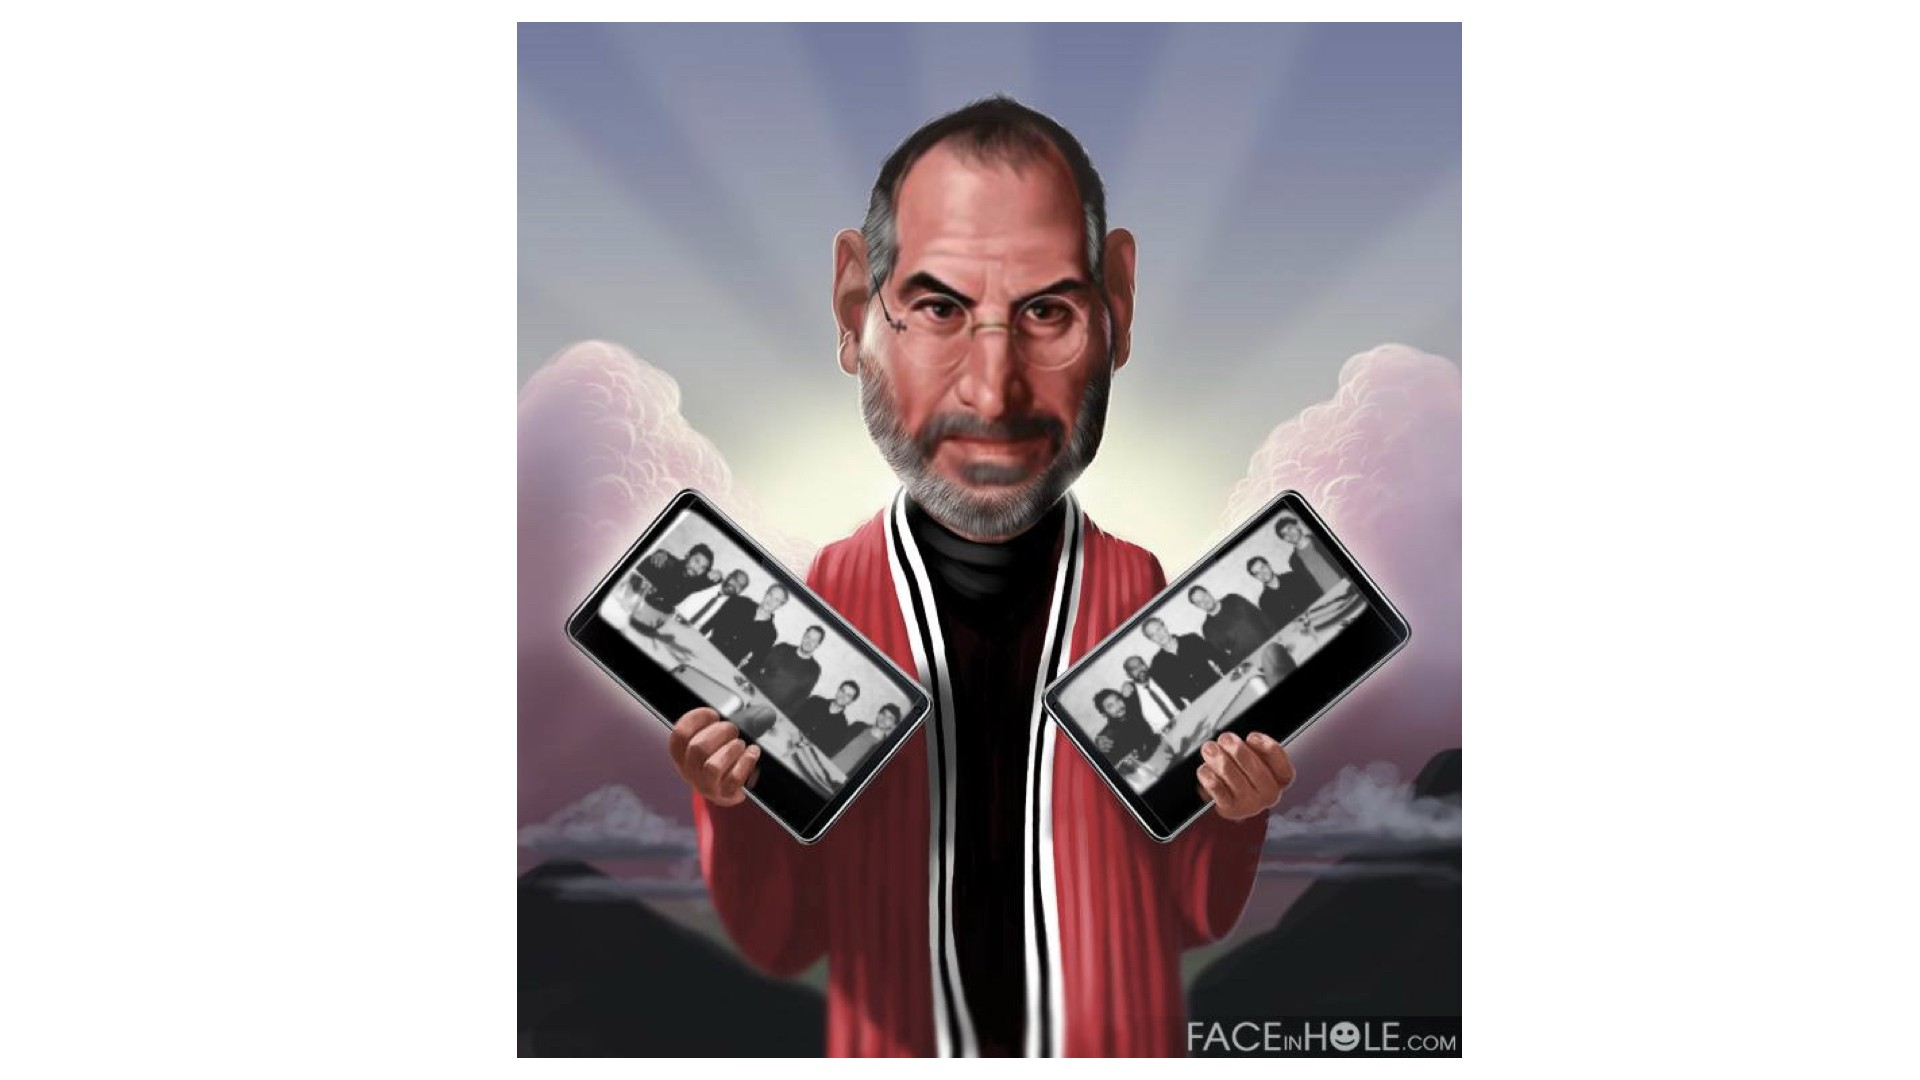 Why Cant Steve Jobs Make Iphone At >> Steve Jobs Didn T Invent The Iphone But He Did Make It Happen